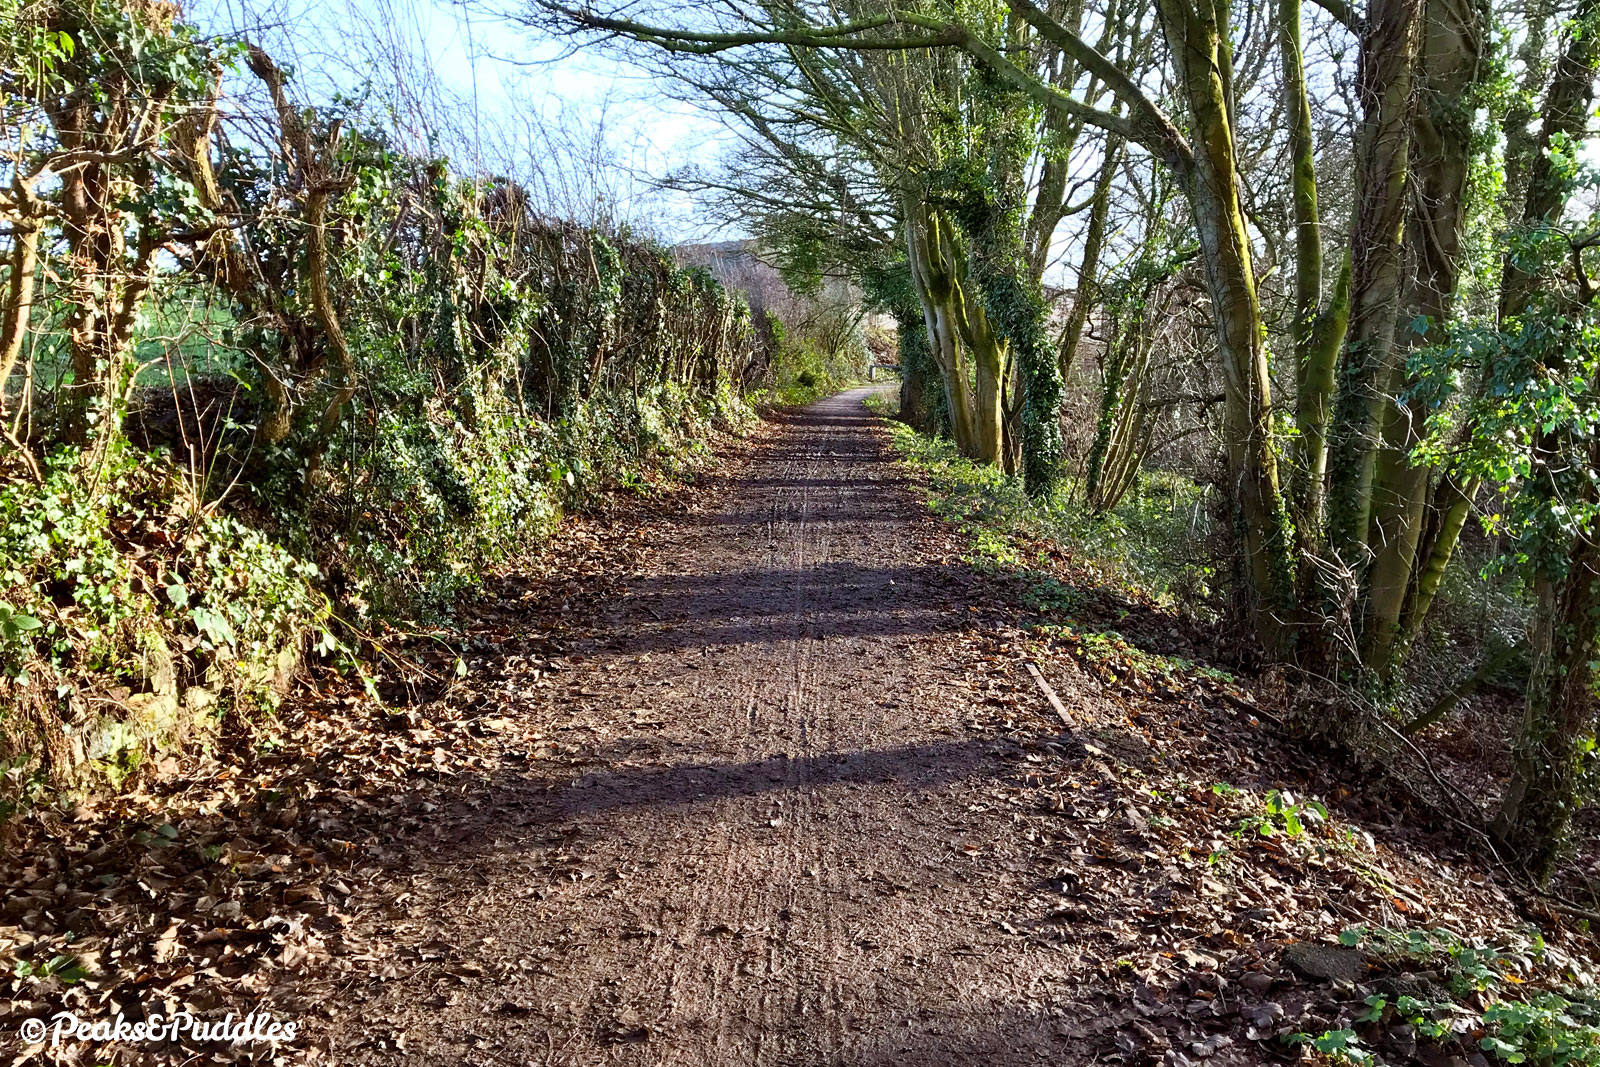 The wooded path approaching Waterside Farm, opposite a water treatment works, has a surface coating of water or wet leaves for much of the year and would be a good candidate for Flexipave.